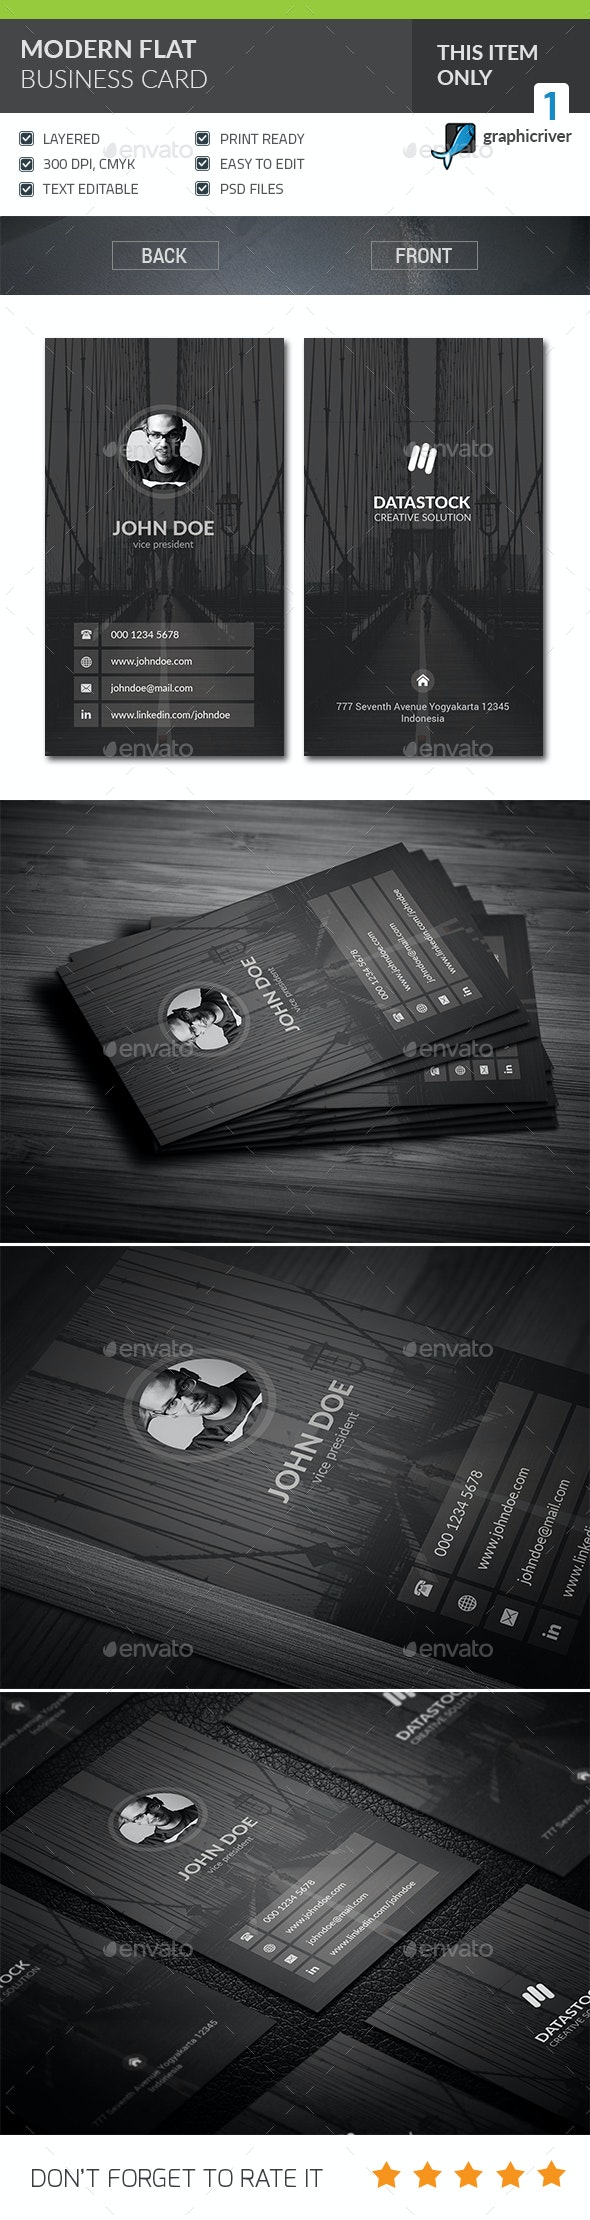 Modern Flat Corporate Business Card - Corporate Business Cards